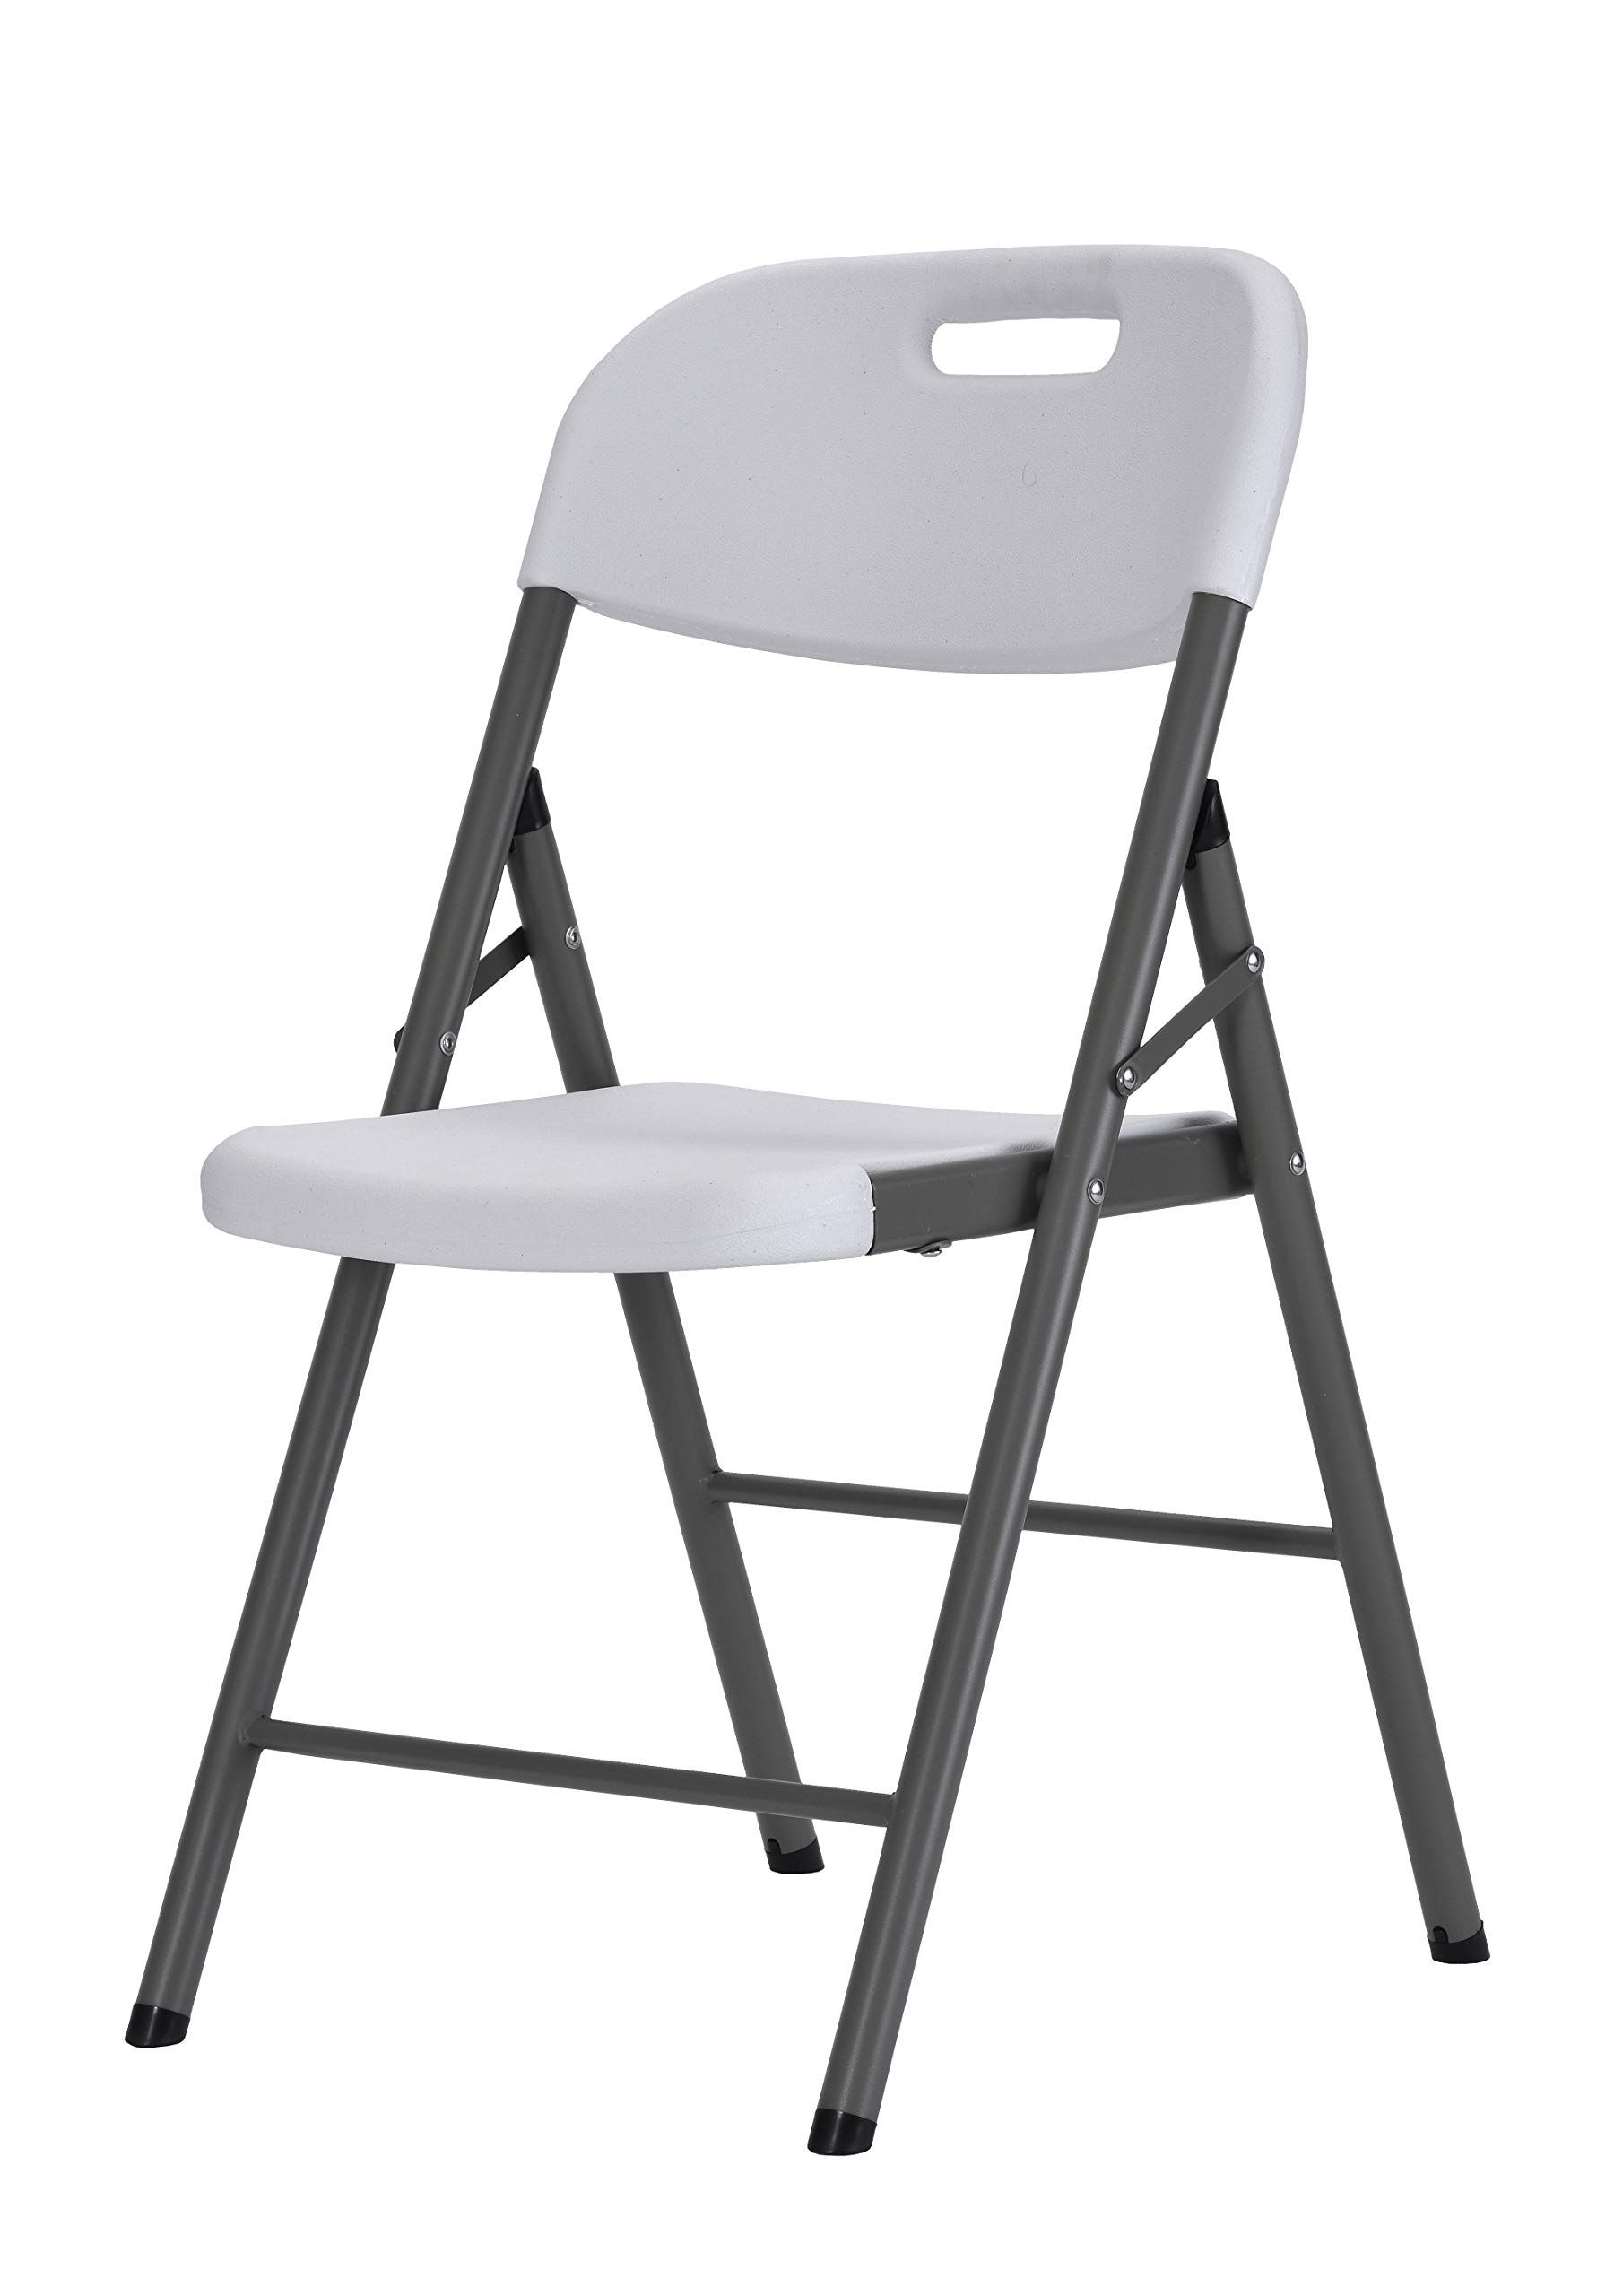 Sandusky Lee Fpc182035 Wv2 Resin Folding Chair White Pack Of 4 Folding Chair Plastic Folding Chairs Chair